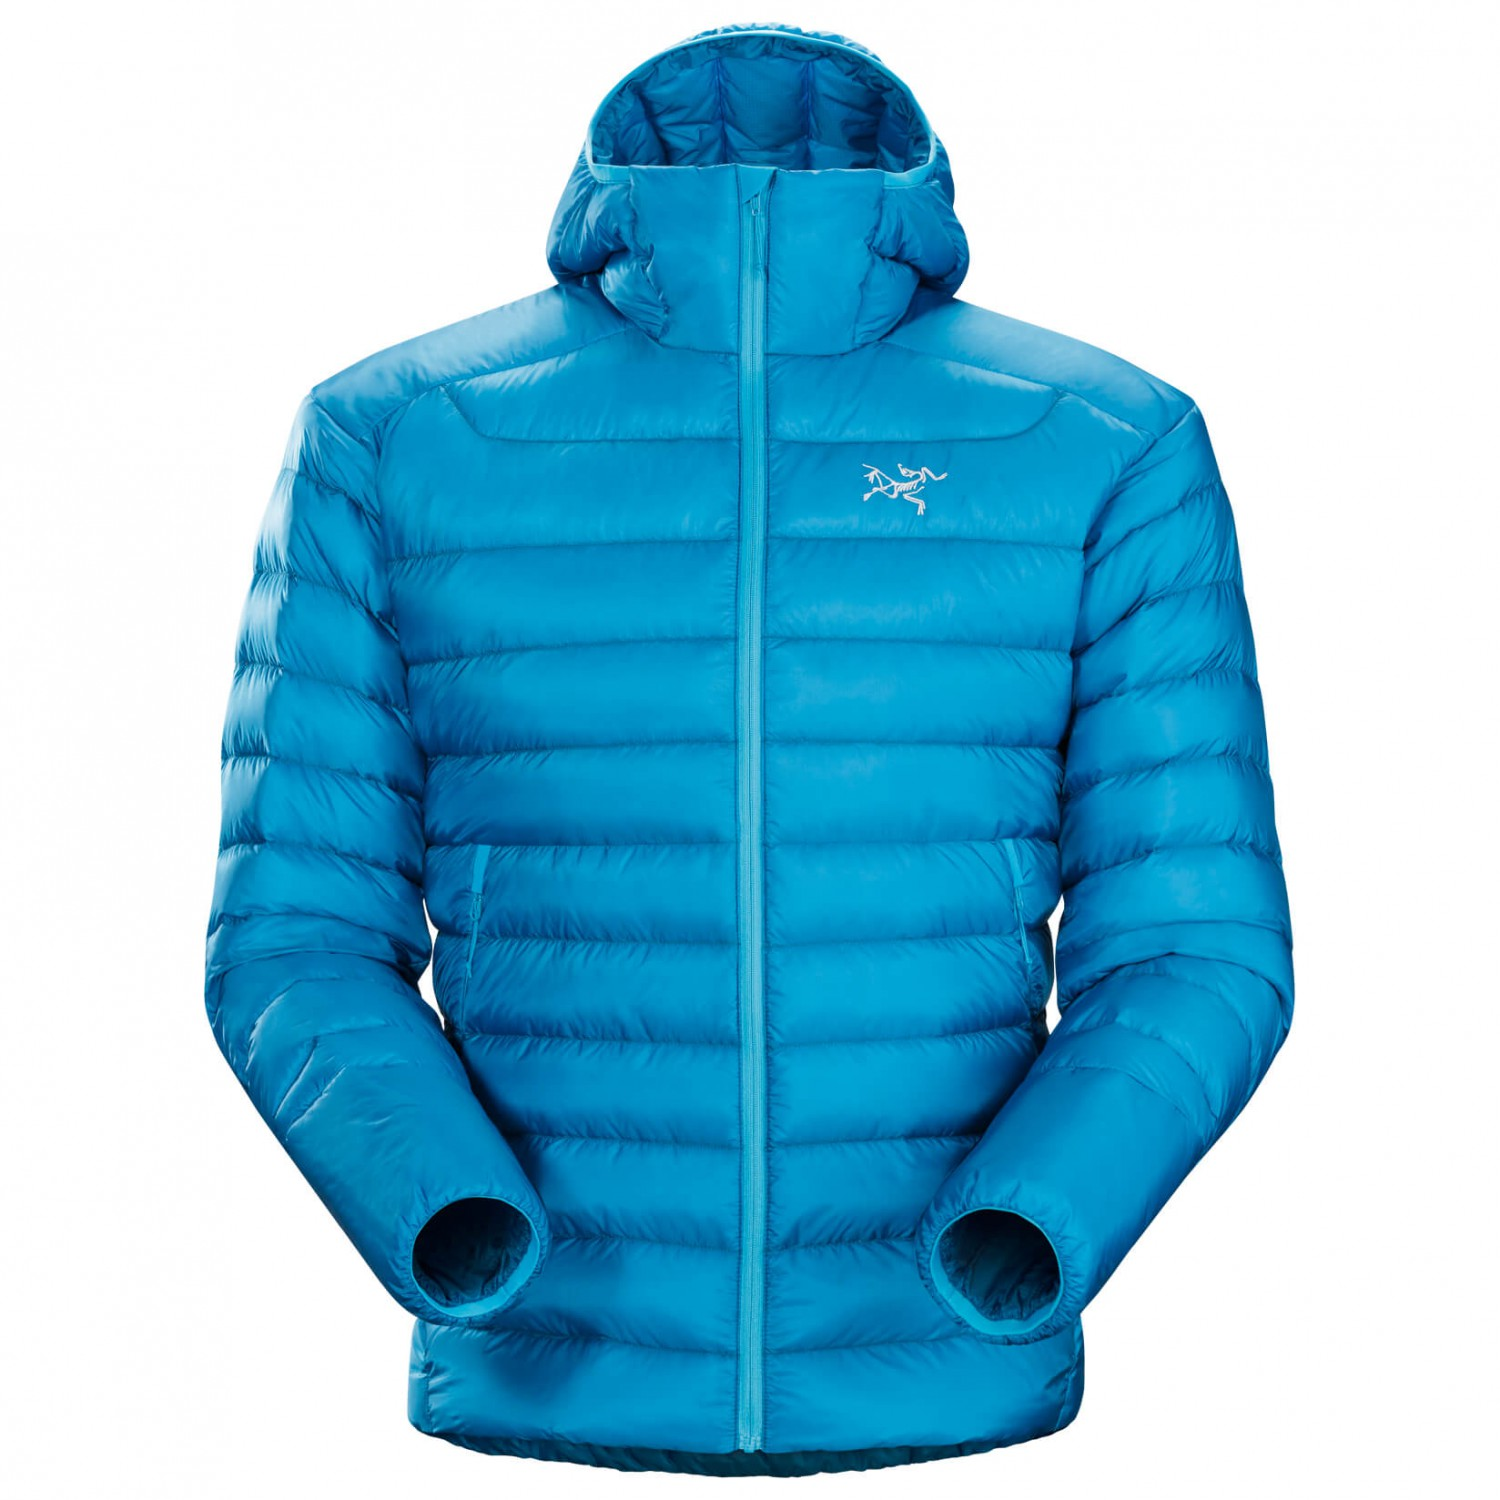 how to find out model of arcteryx jacket